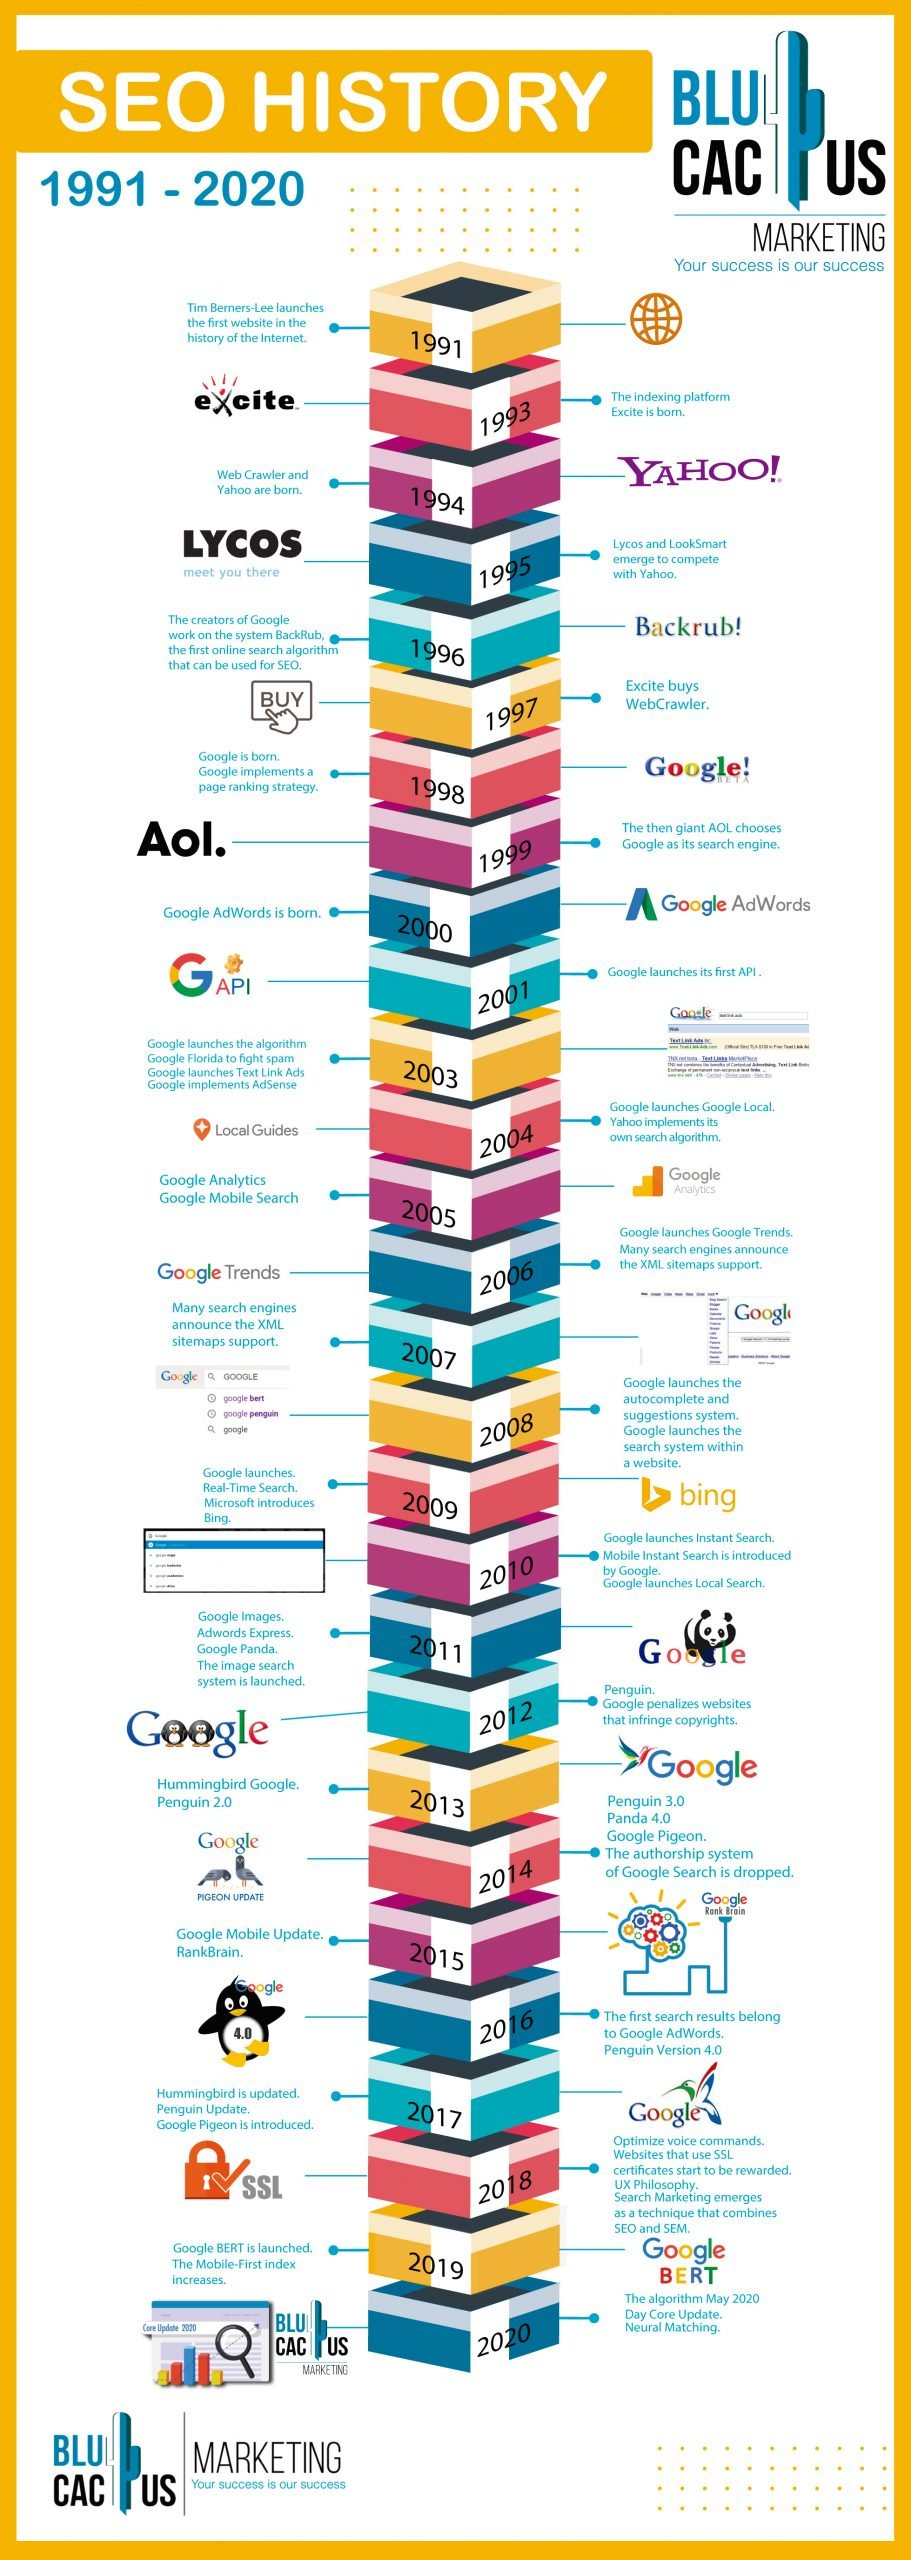 Blucactus - The History of SEO - Infographic